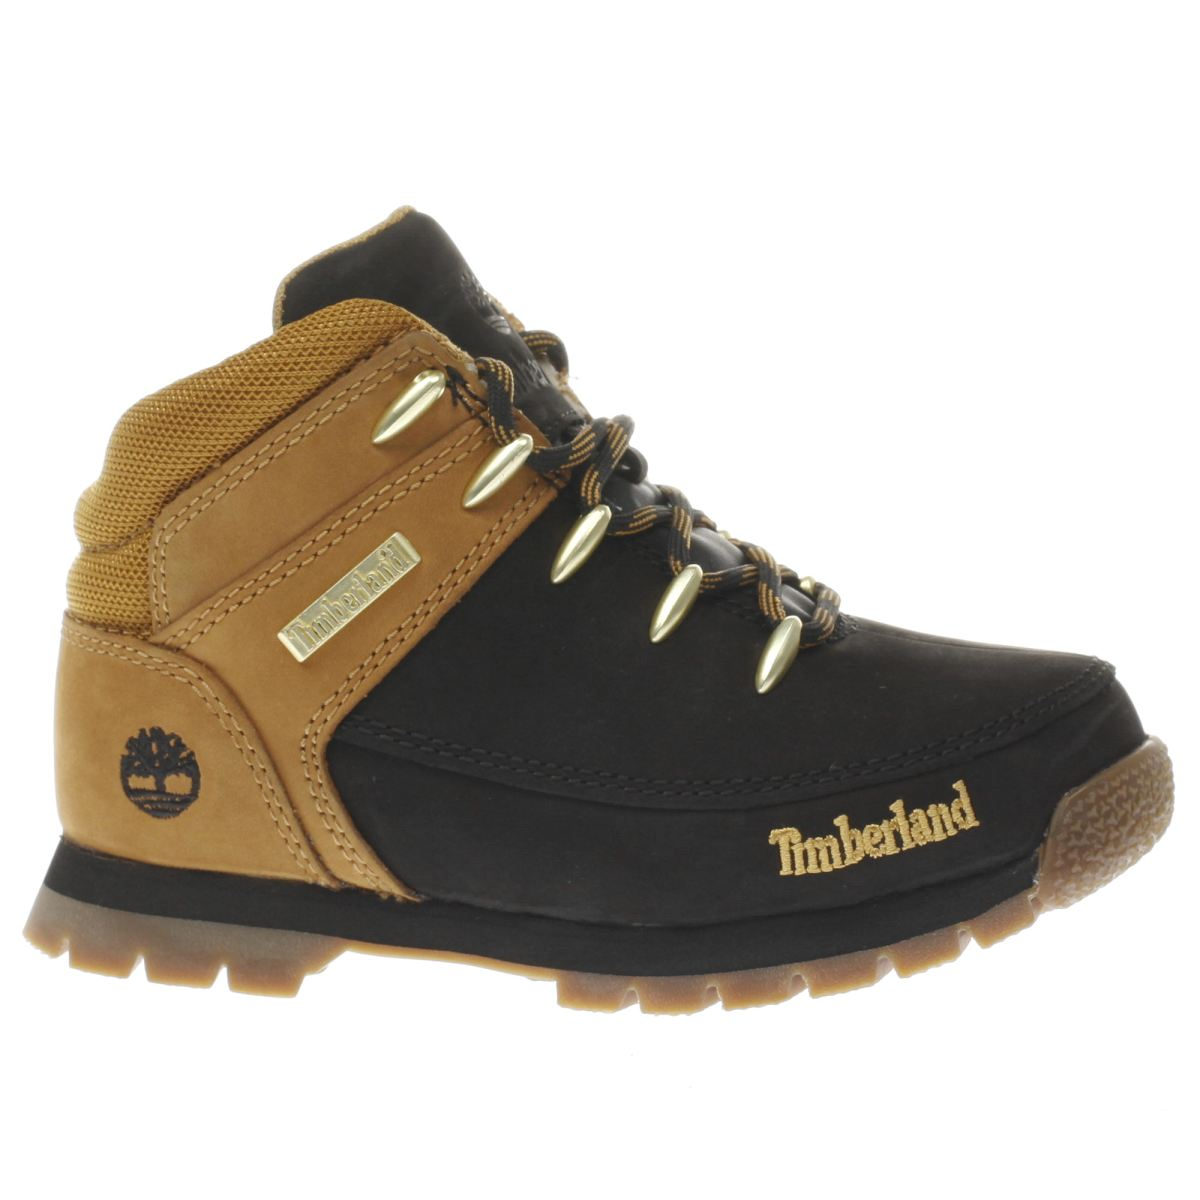 timberland black & gold eurosprint Junior Boots